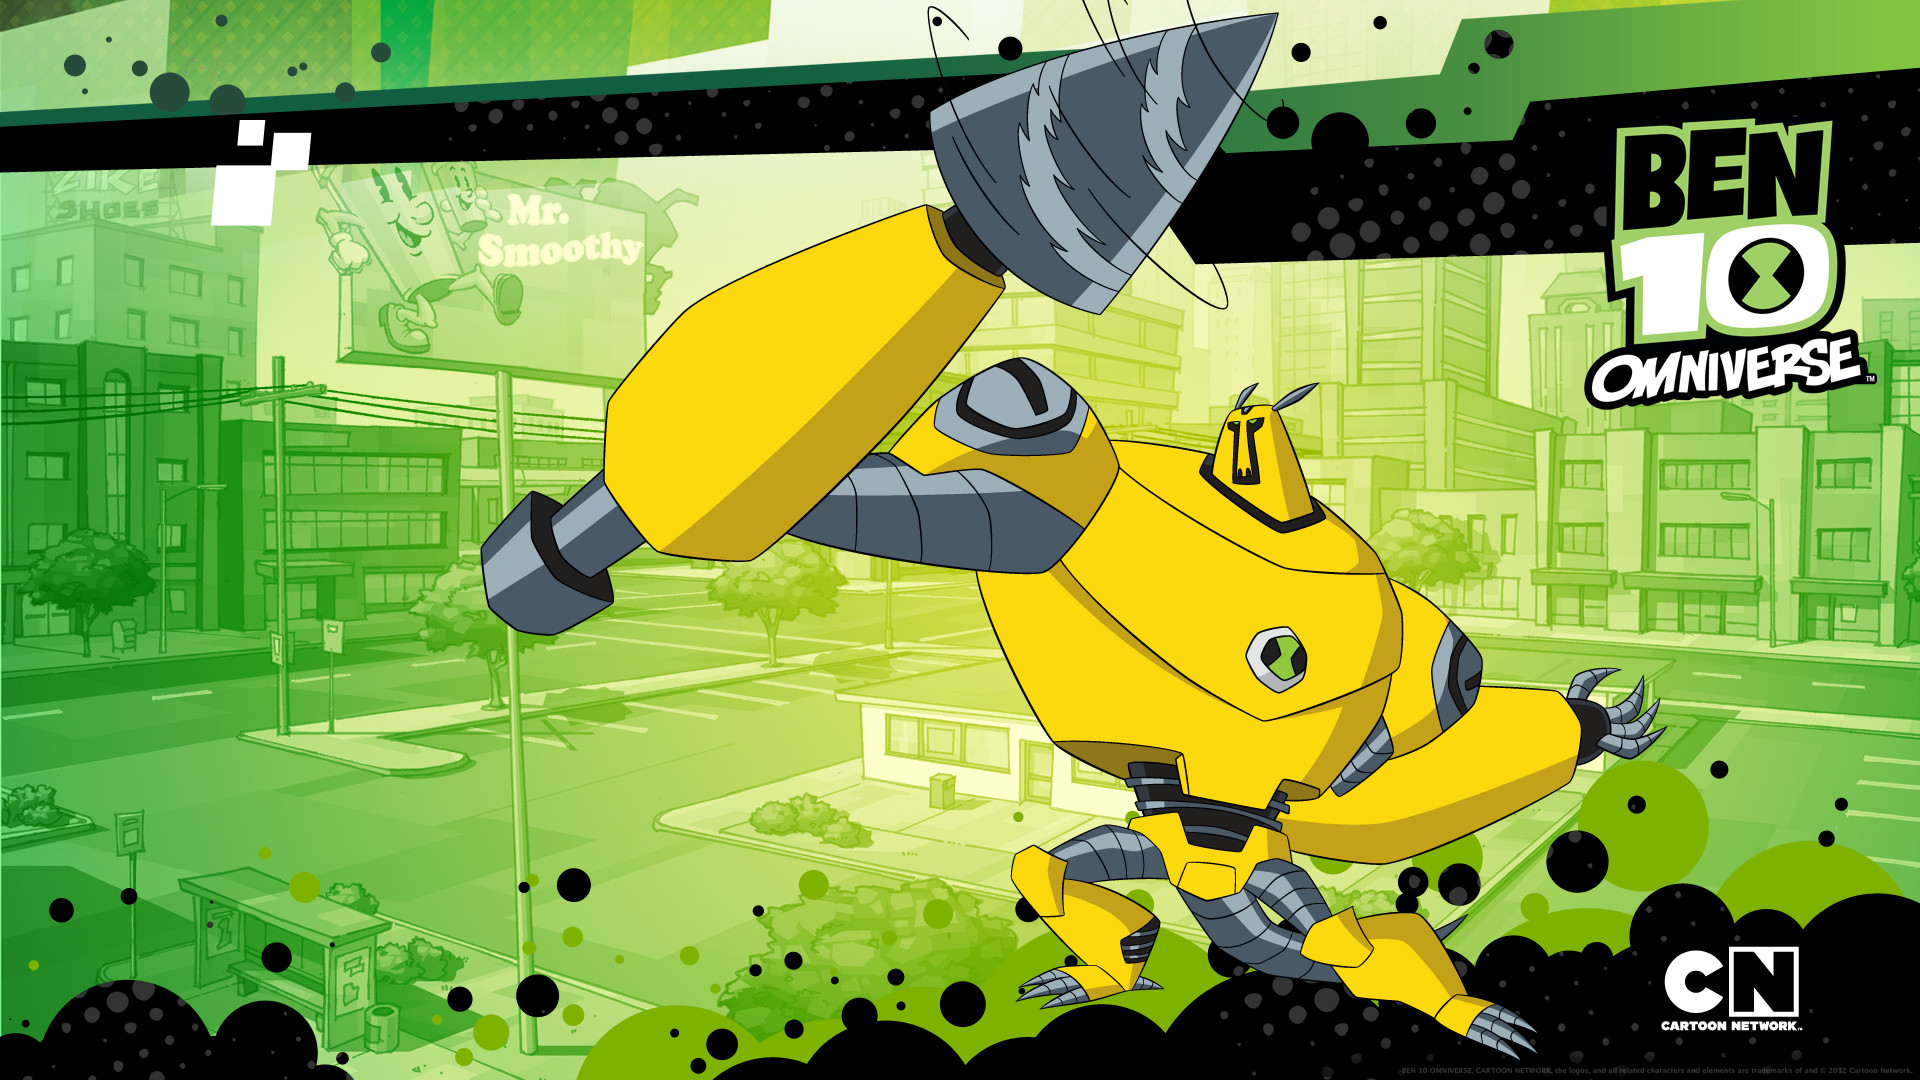 Ben 10 wallpapers 53 images 1920x1080 wallpaper from ben 10 omniverse voltagebd Choice Image